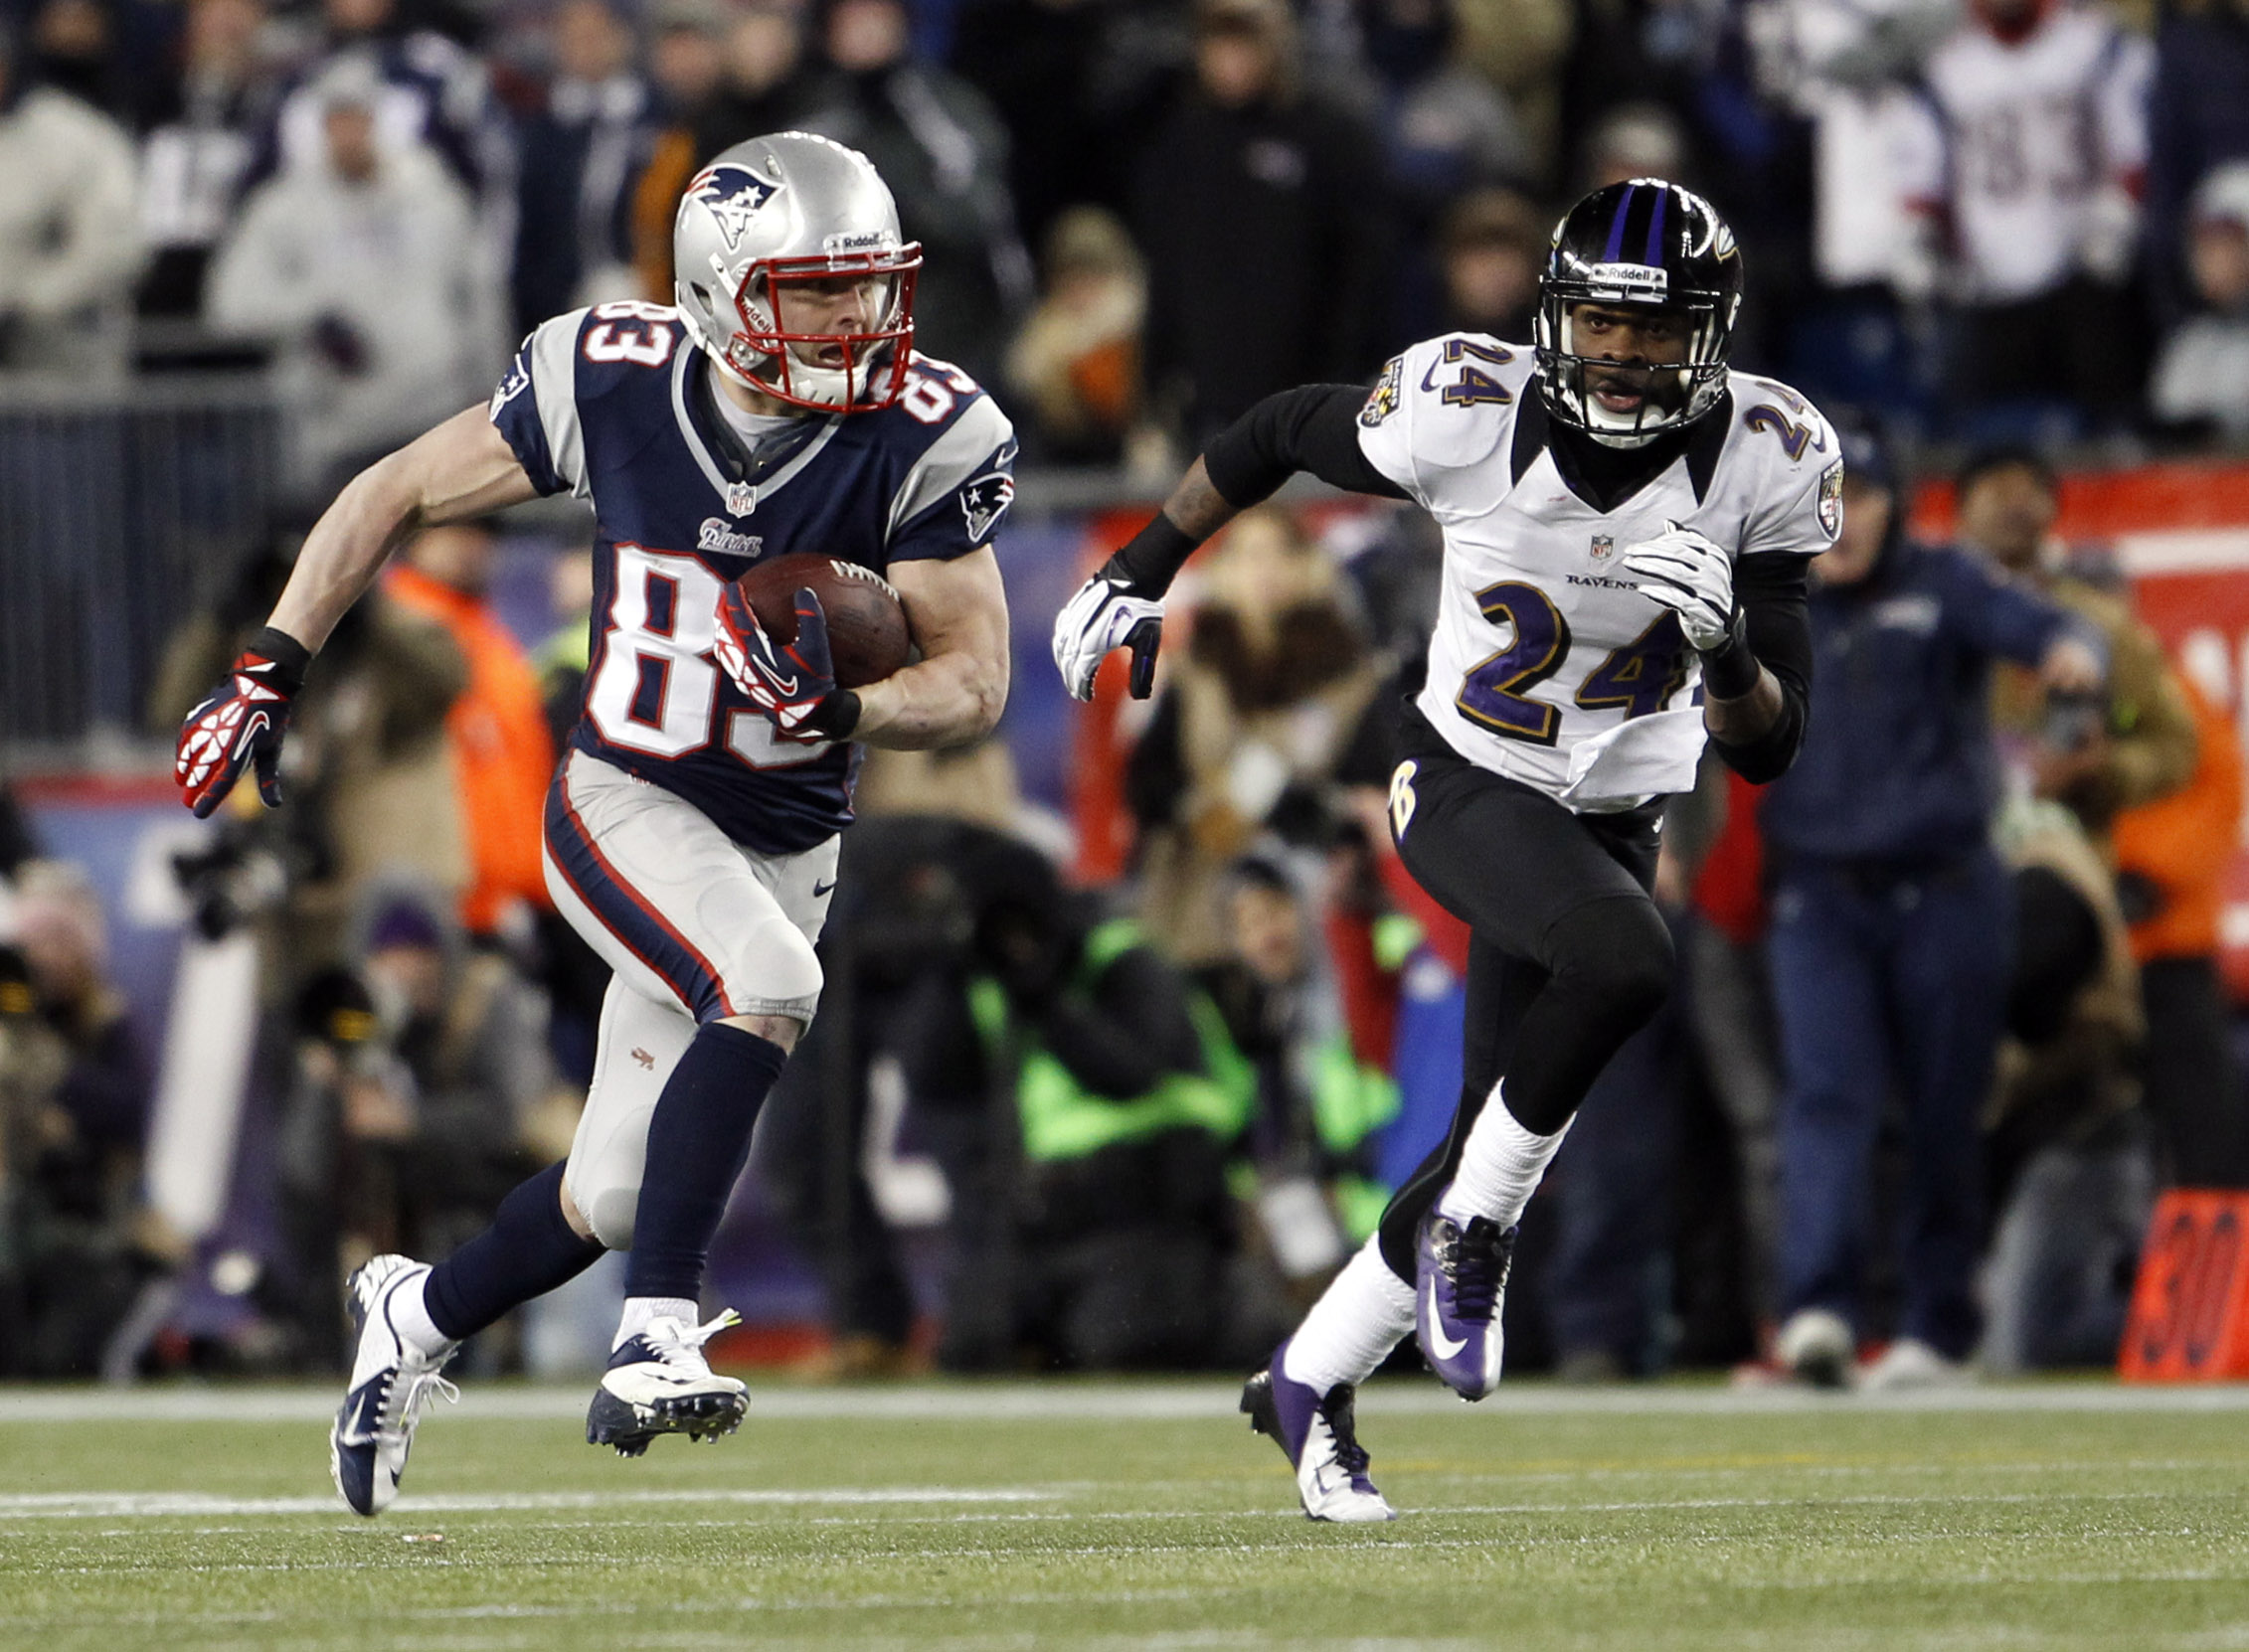 Wes Welker runs past Ravens CB Corey Graham in the AFC title game. (USA TODAY Sports)